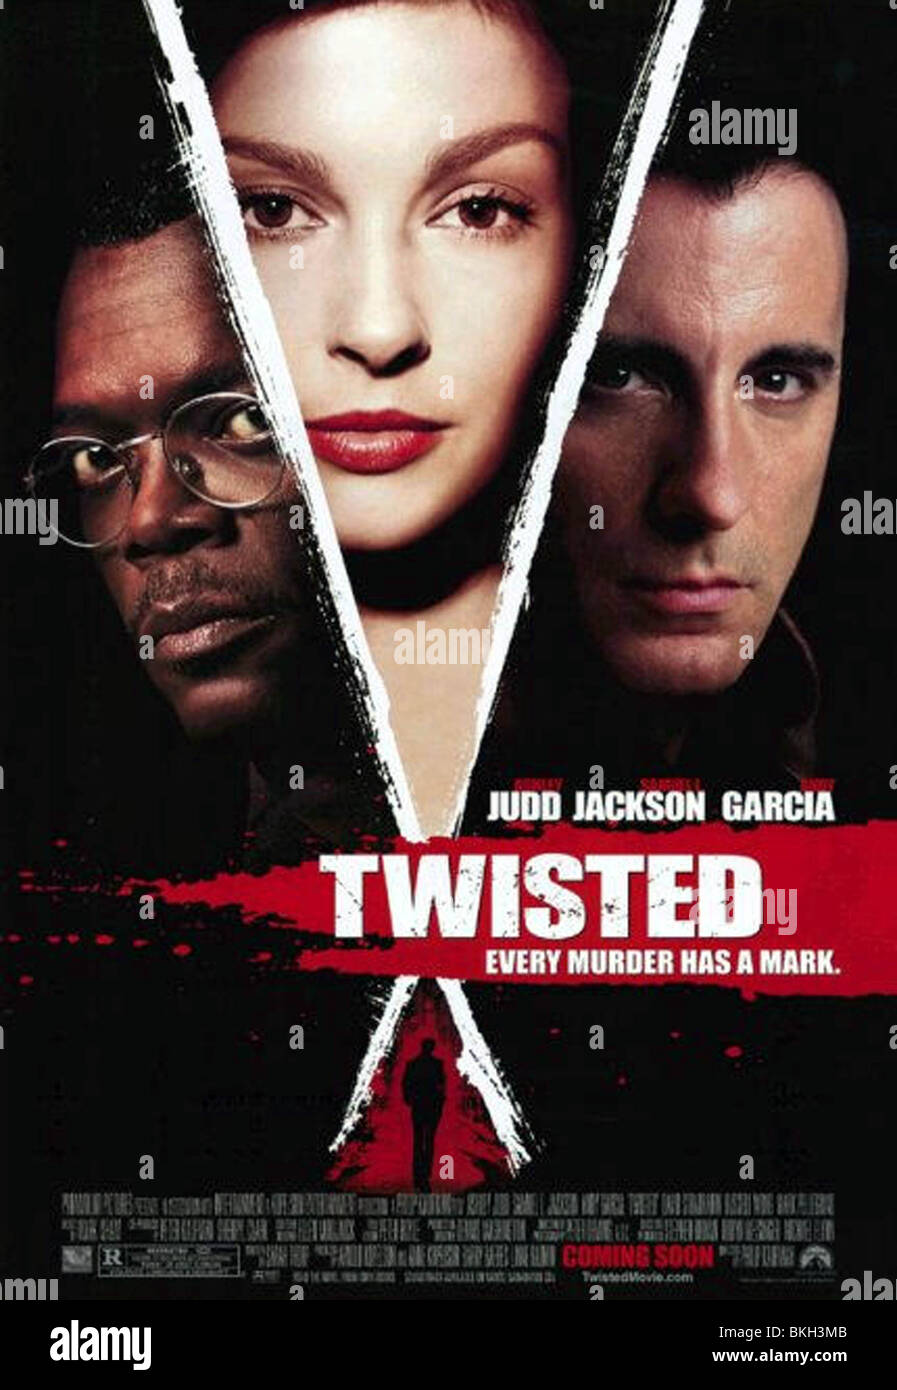 TWISTED -2004 POSTER Immagini Stock